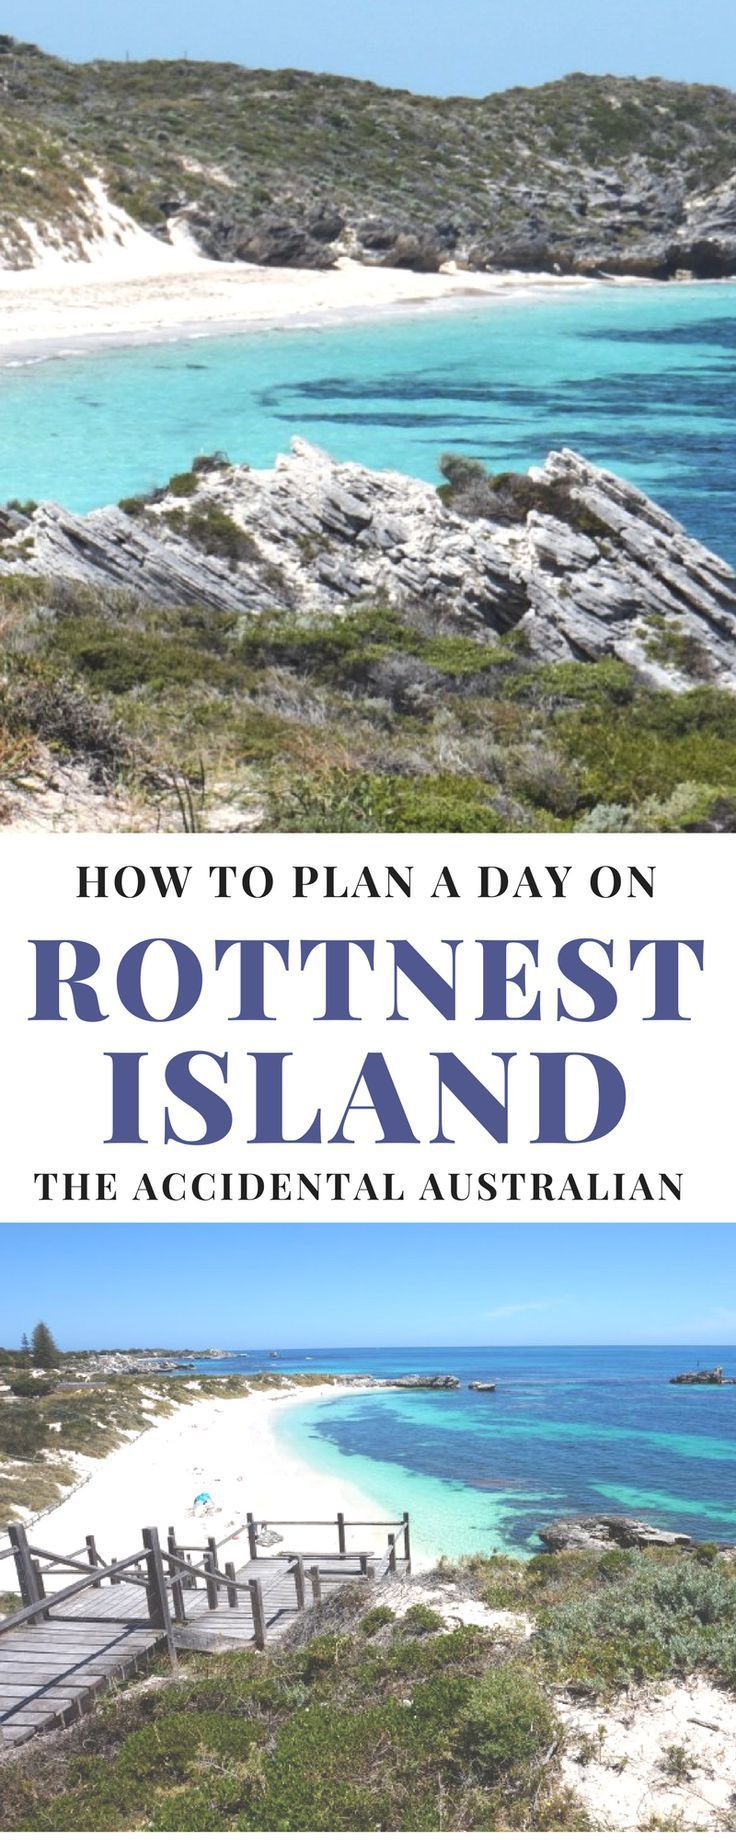 How to plan a day on Rottnest Island cycling and snorkeling is part of How To Plan A Day On Rottnest Island Cycling And Snorkeling - How to plan a day on Rottnest Island, Top tips for ferry travel, cycling, snorkeling and quokkas on this stunning island off the WA coast